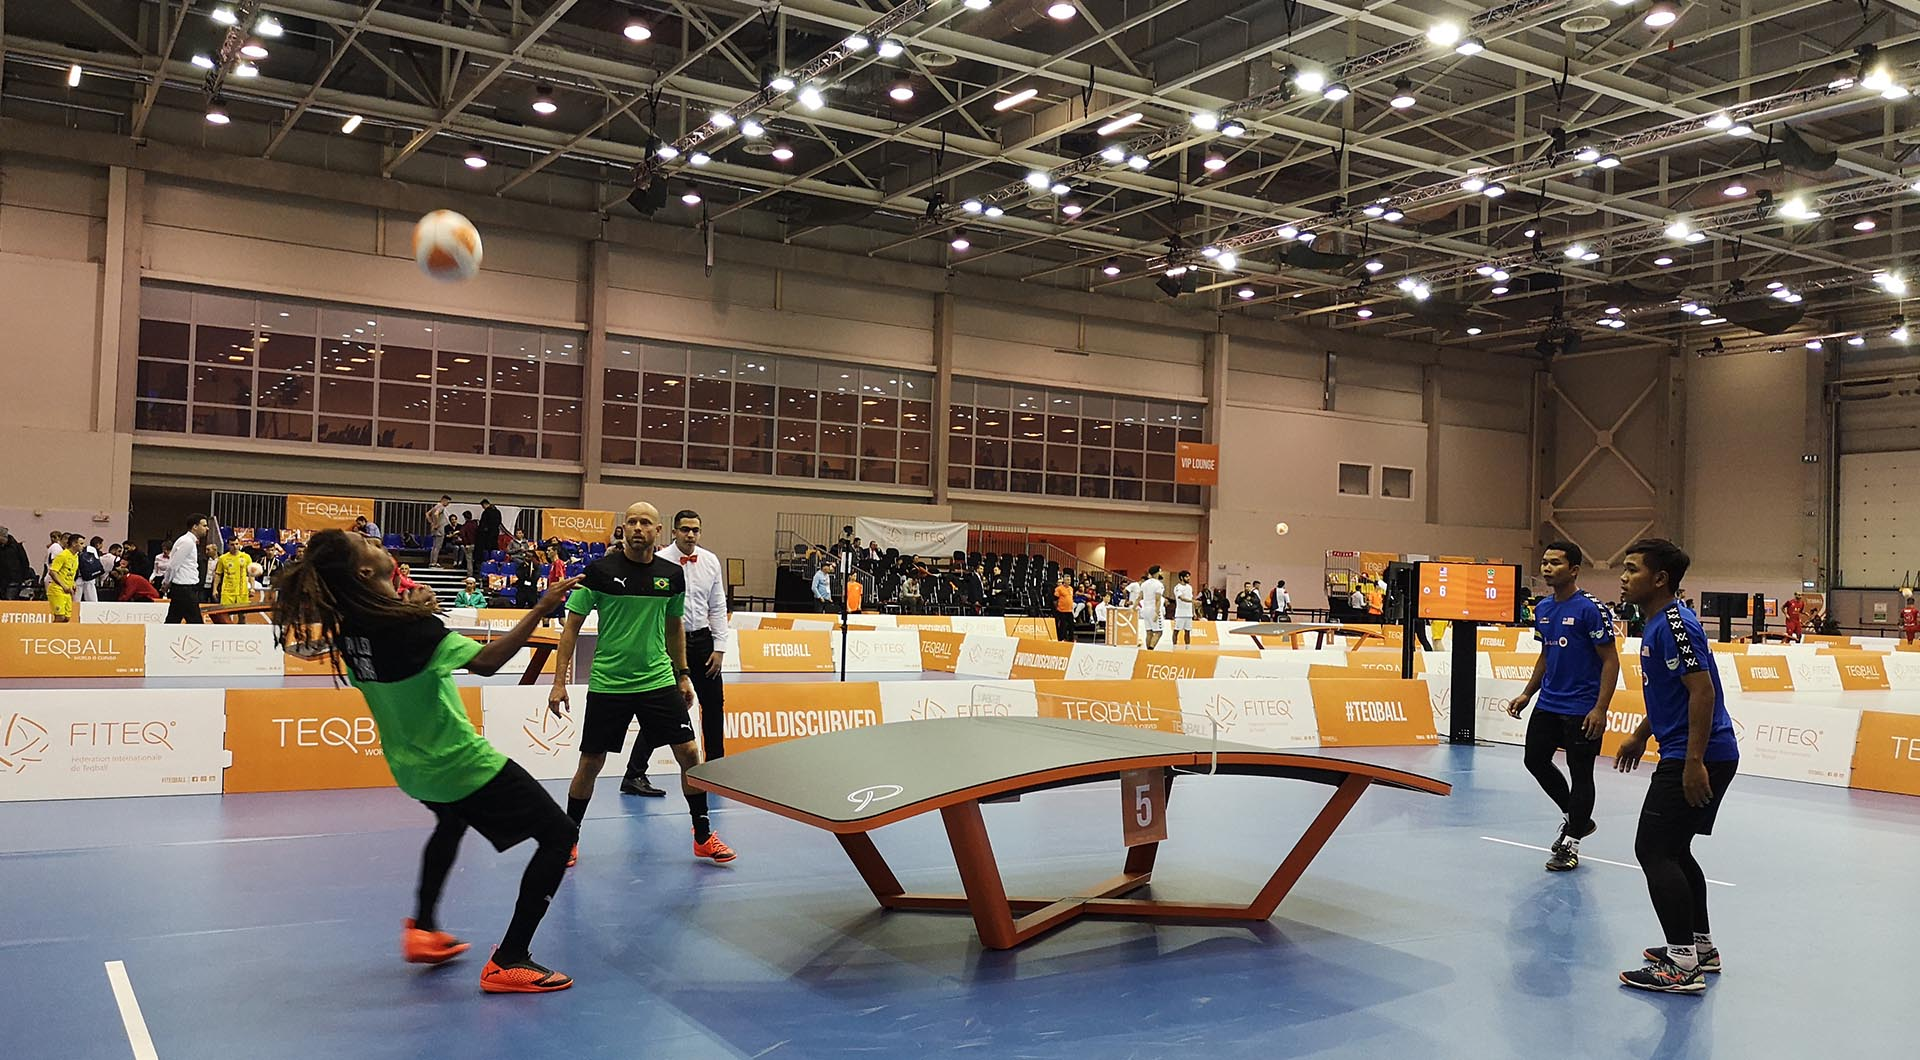 TEQBALL WORLD CUP